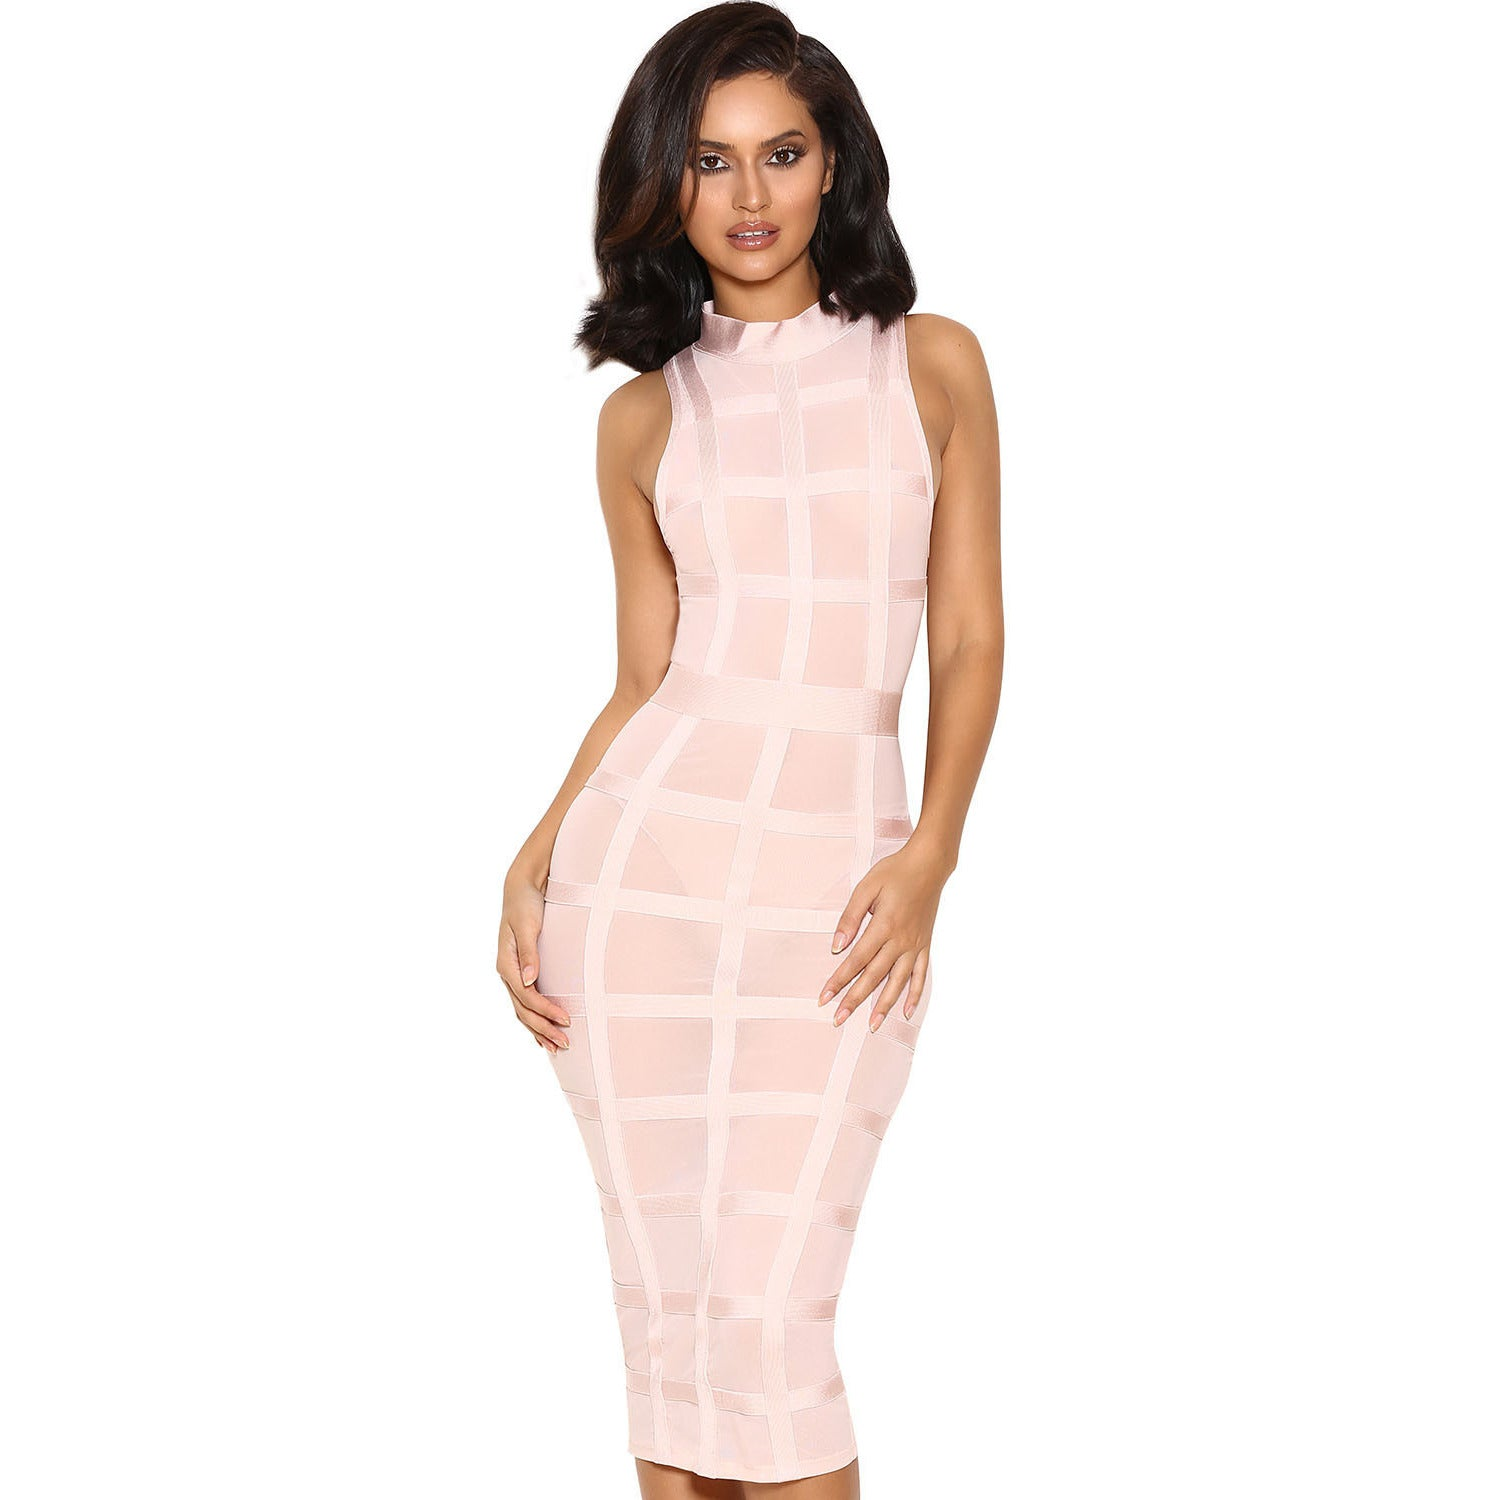 Cute Pink Grid Frock Bandage Dress LAVELIQ SALE - LAVELIQ - 1